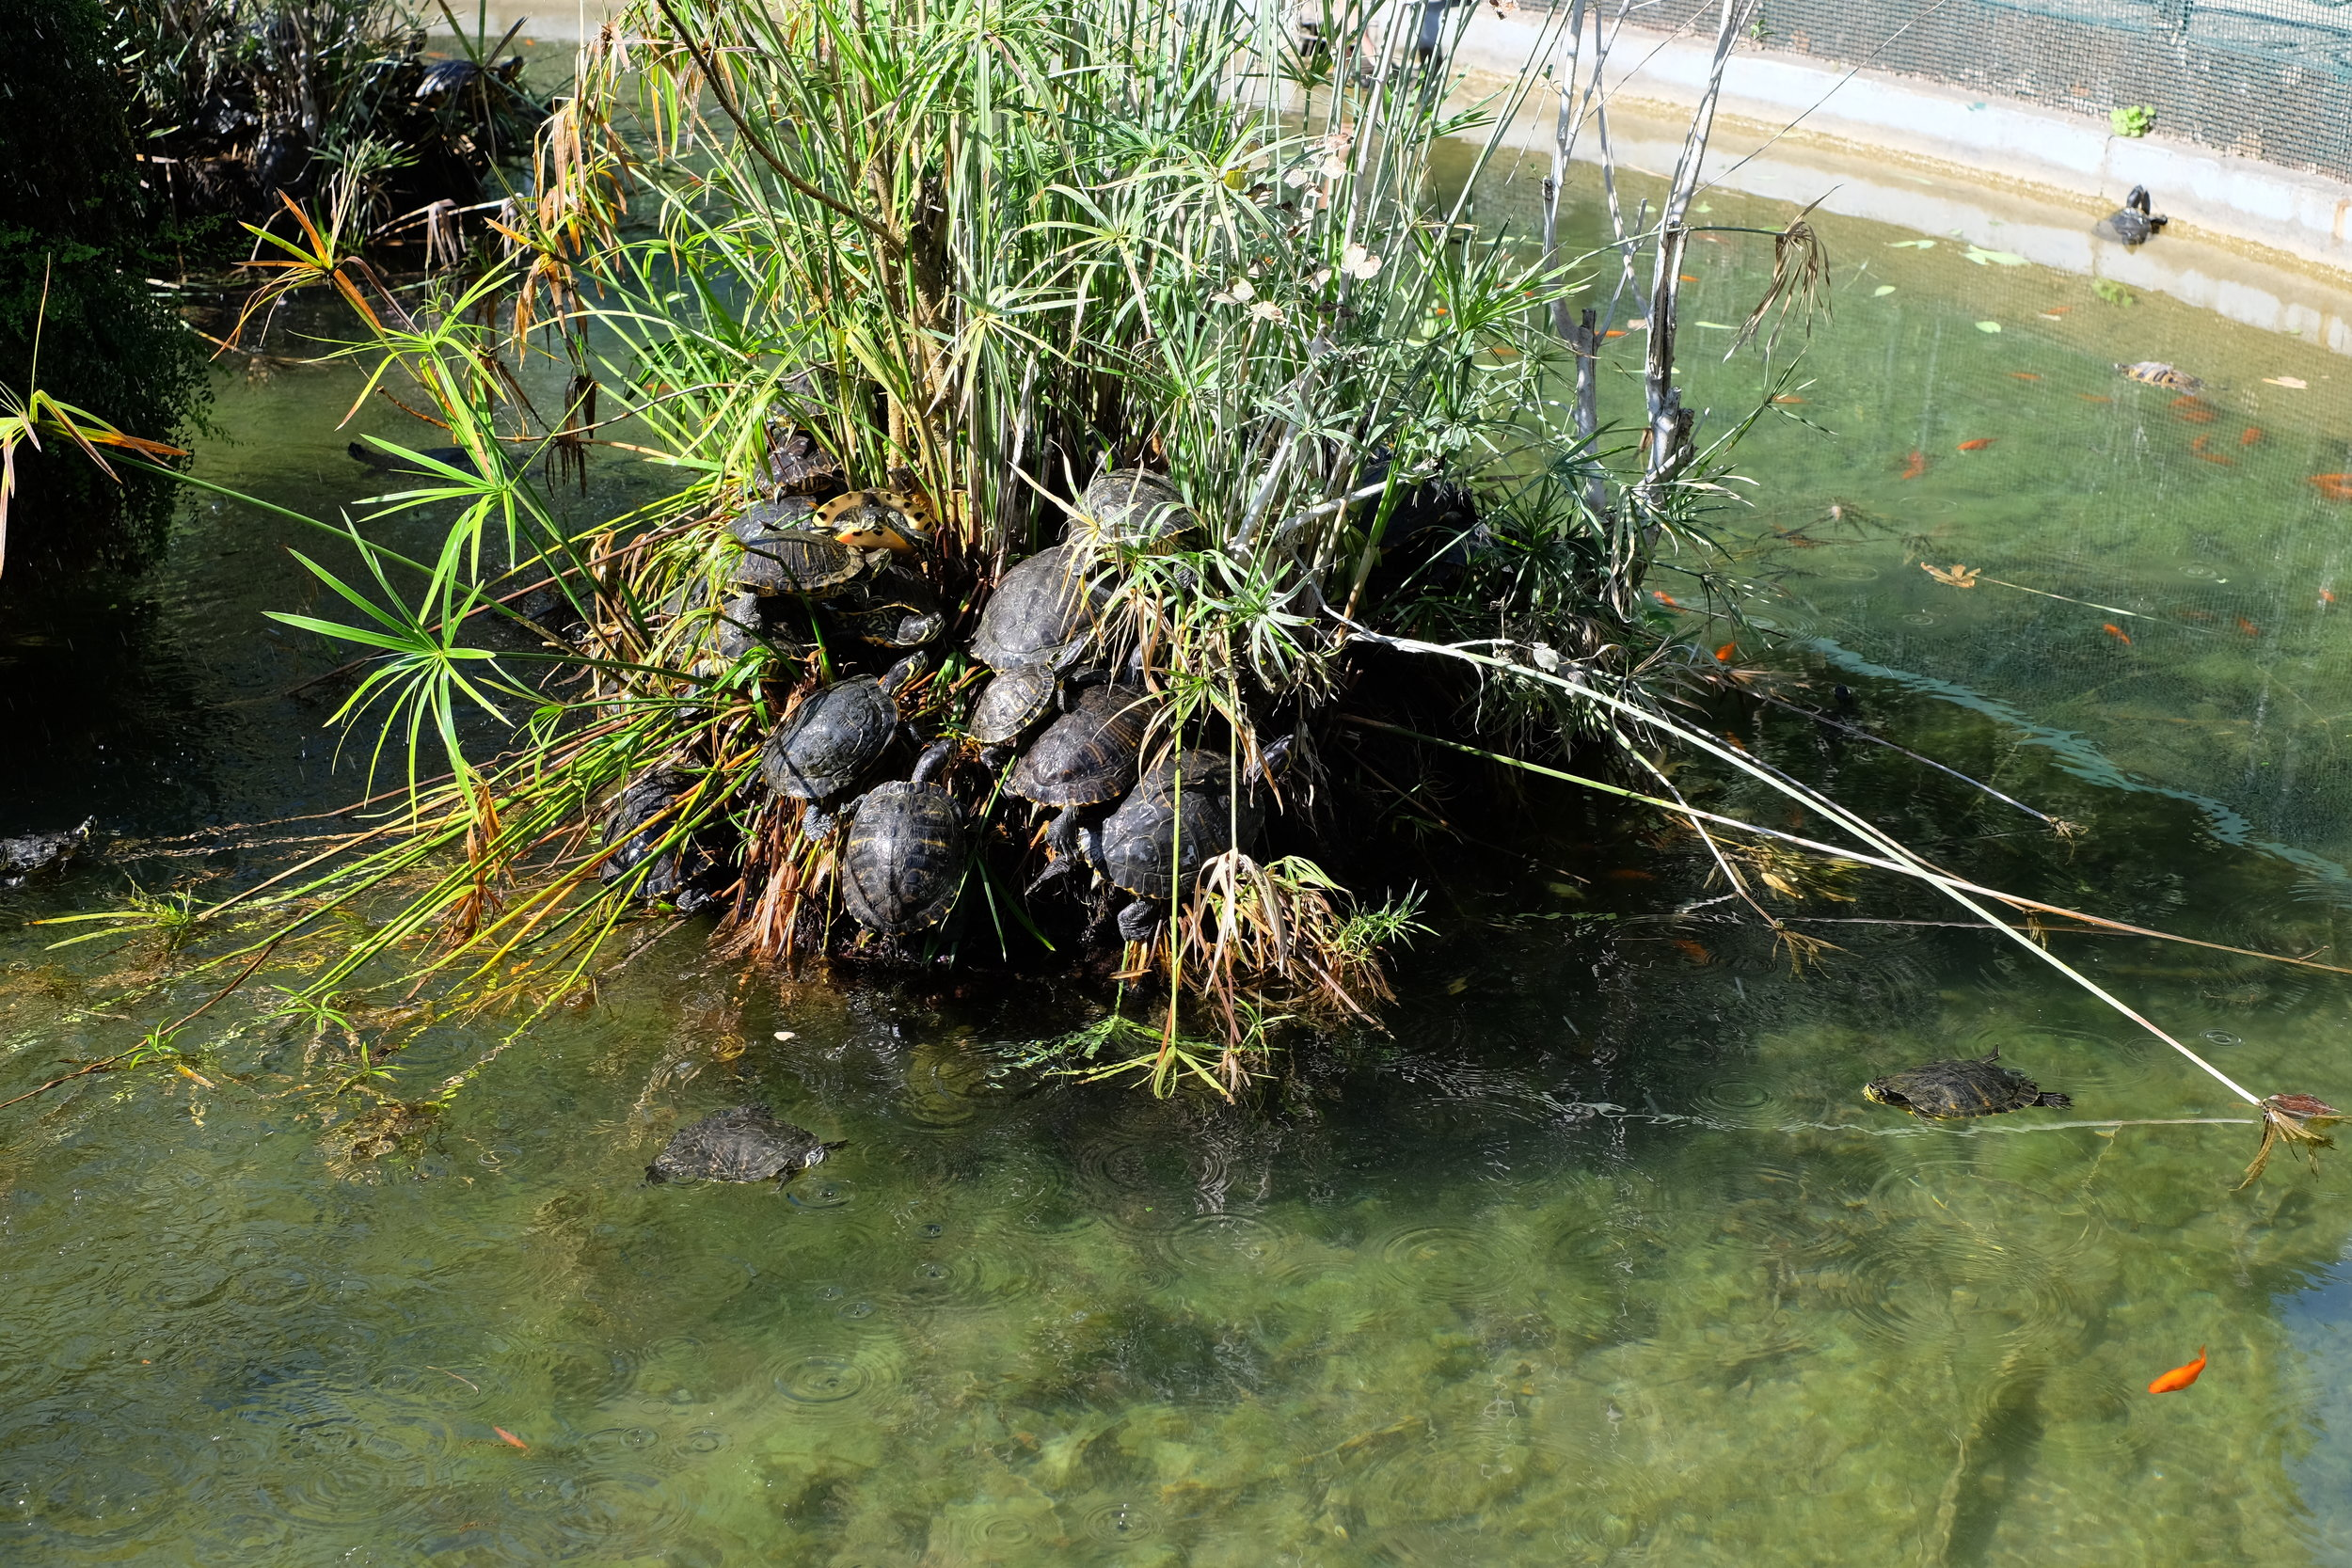 The cute turtles in the fountain of the villa seem to enjoy the weather!